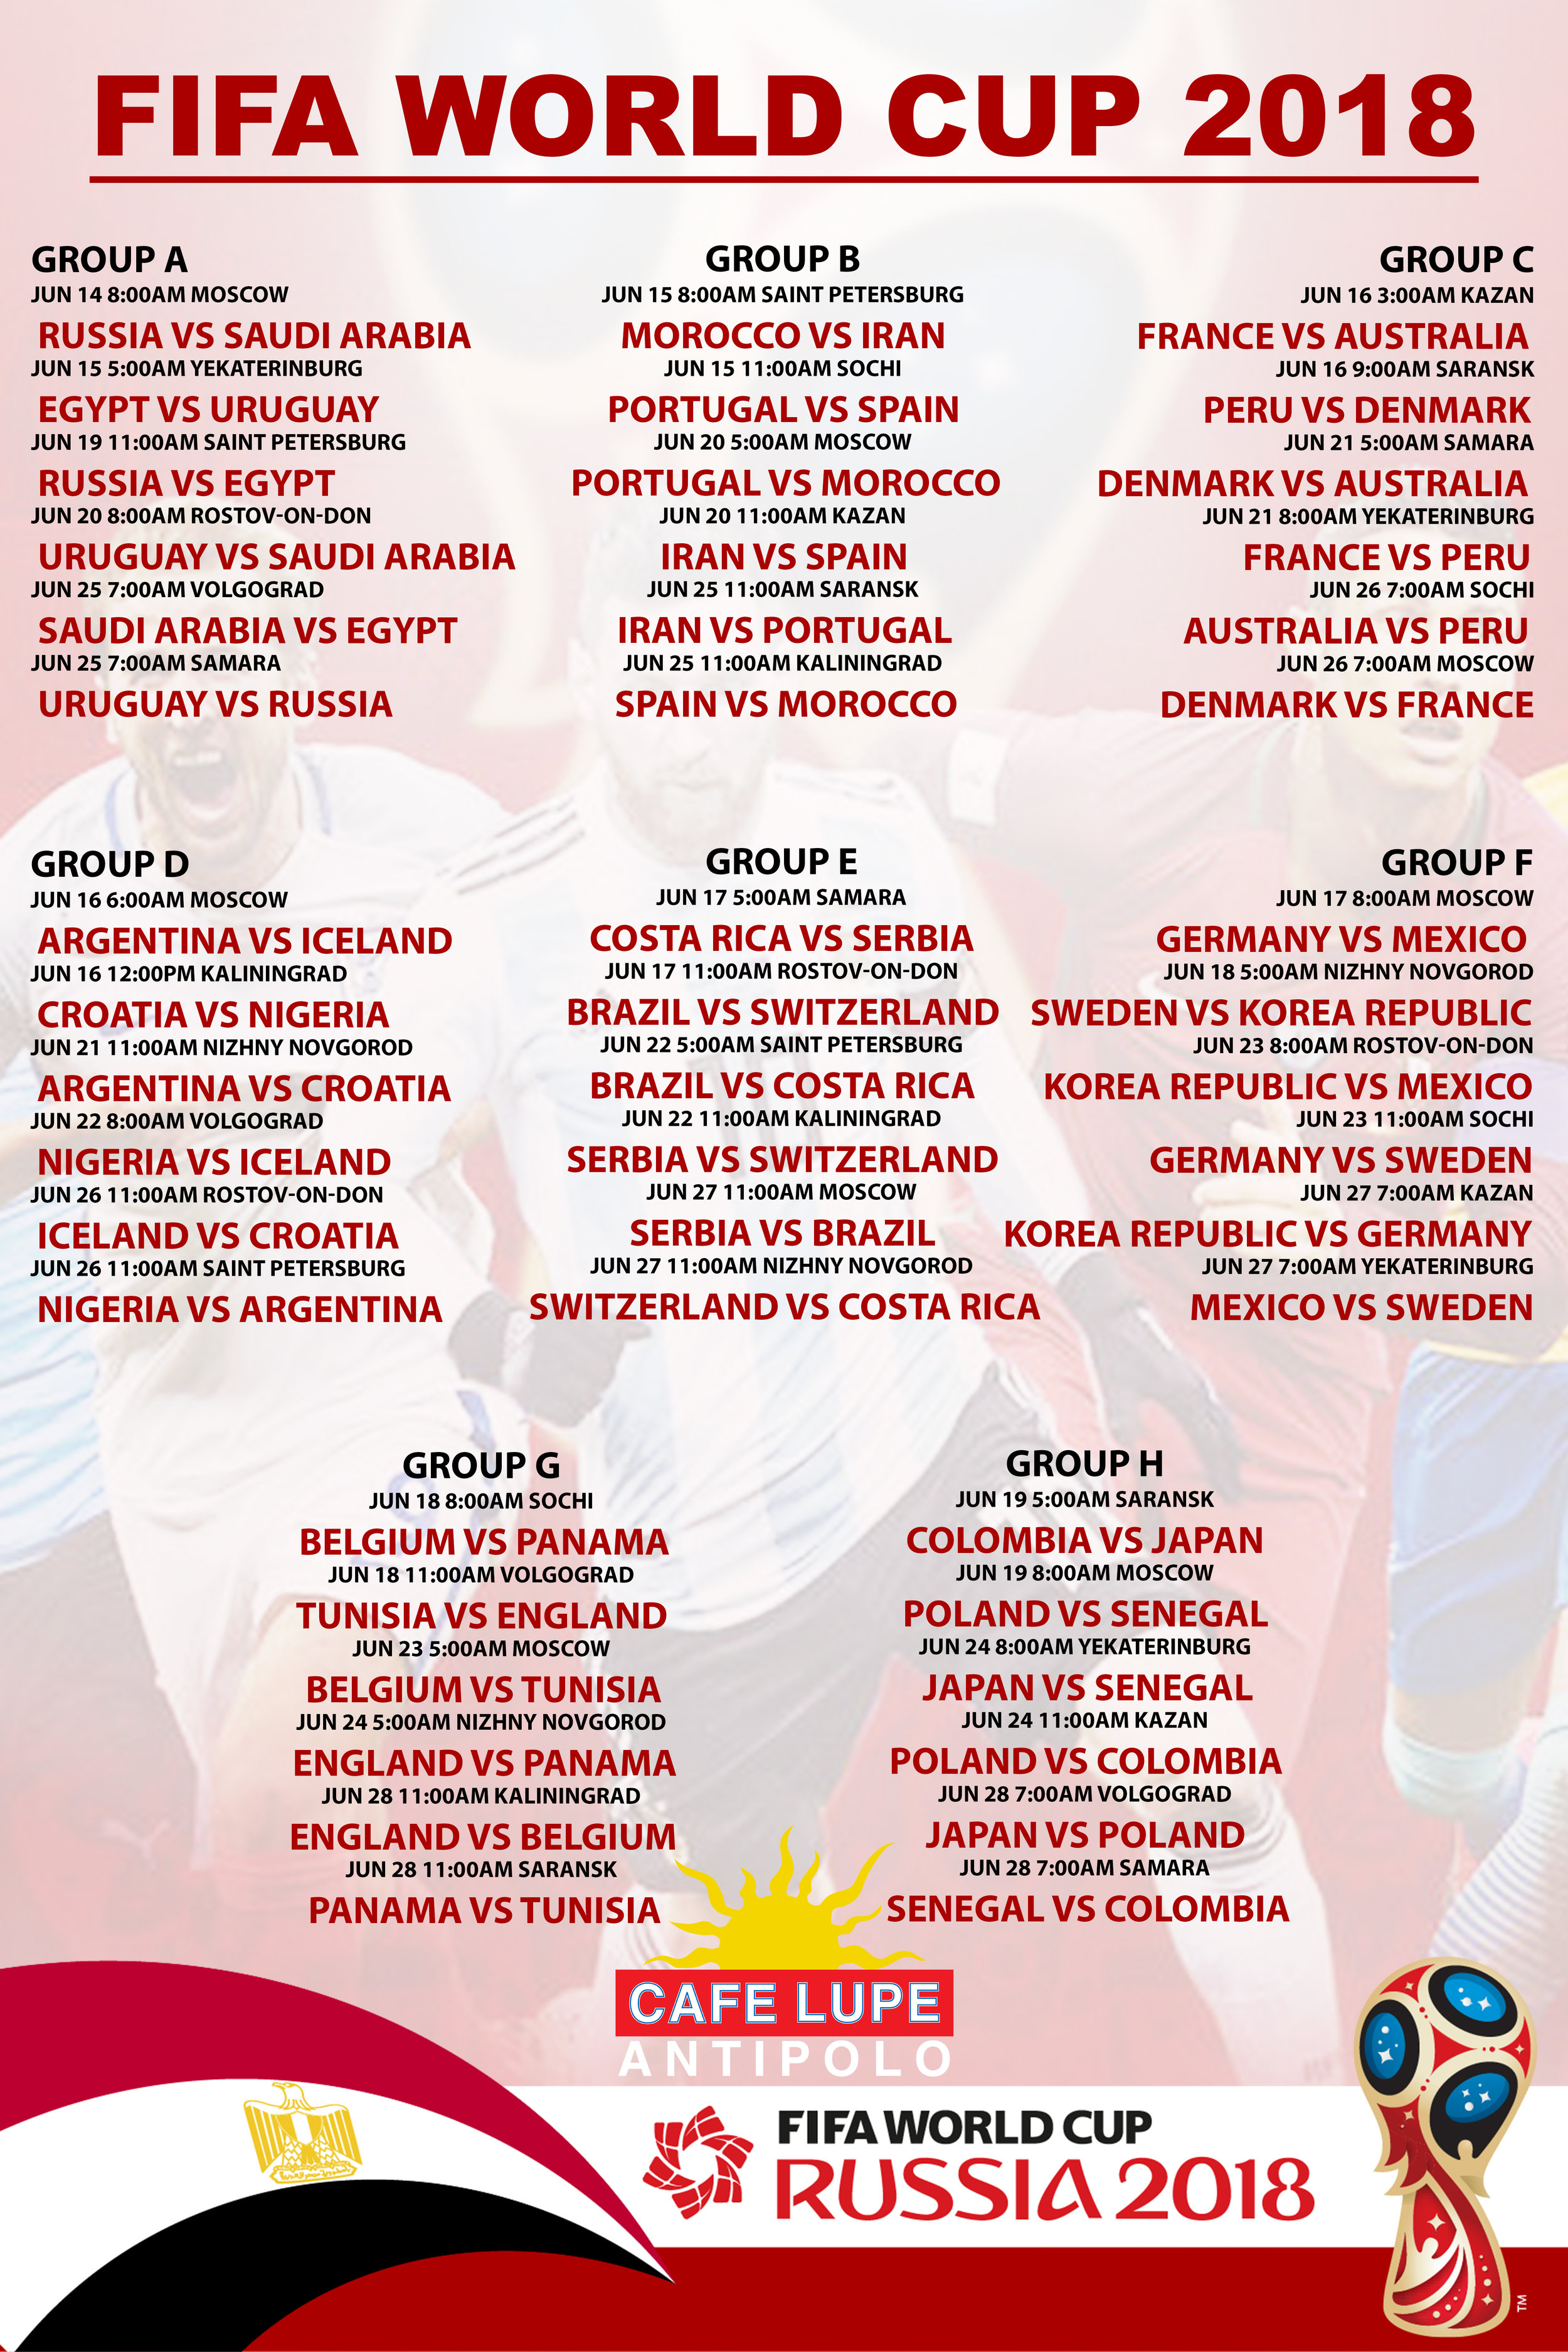 world-cup-2018-schedule-in-cafe-lupe-antipolo